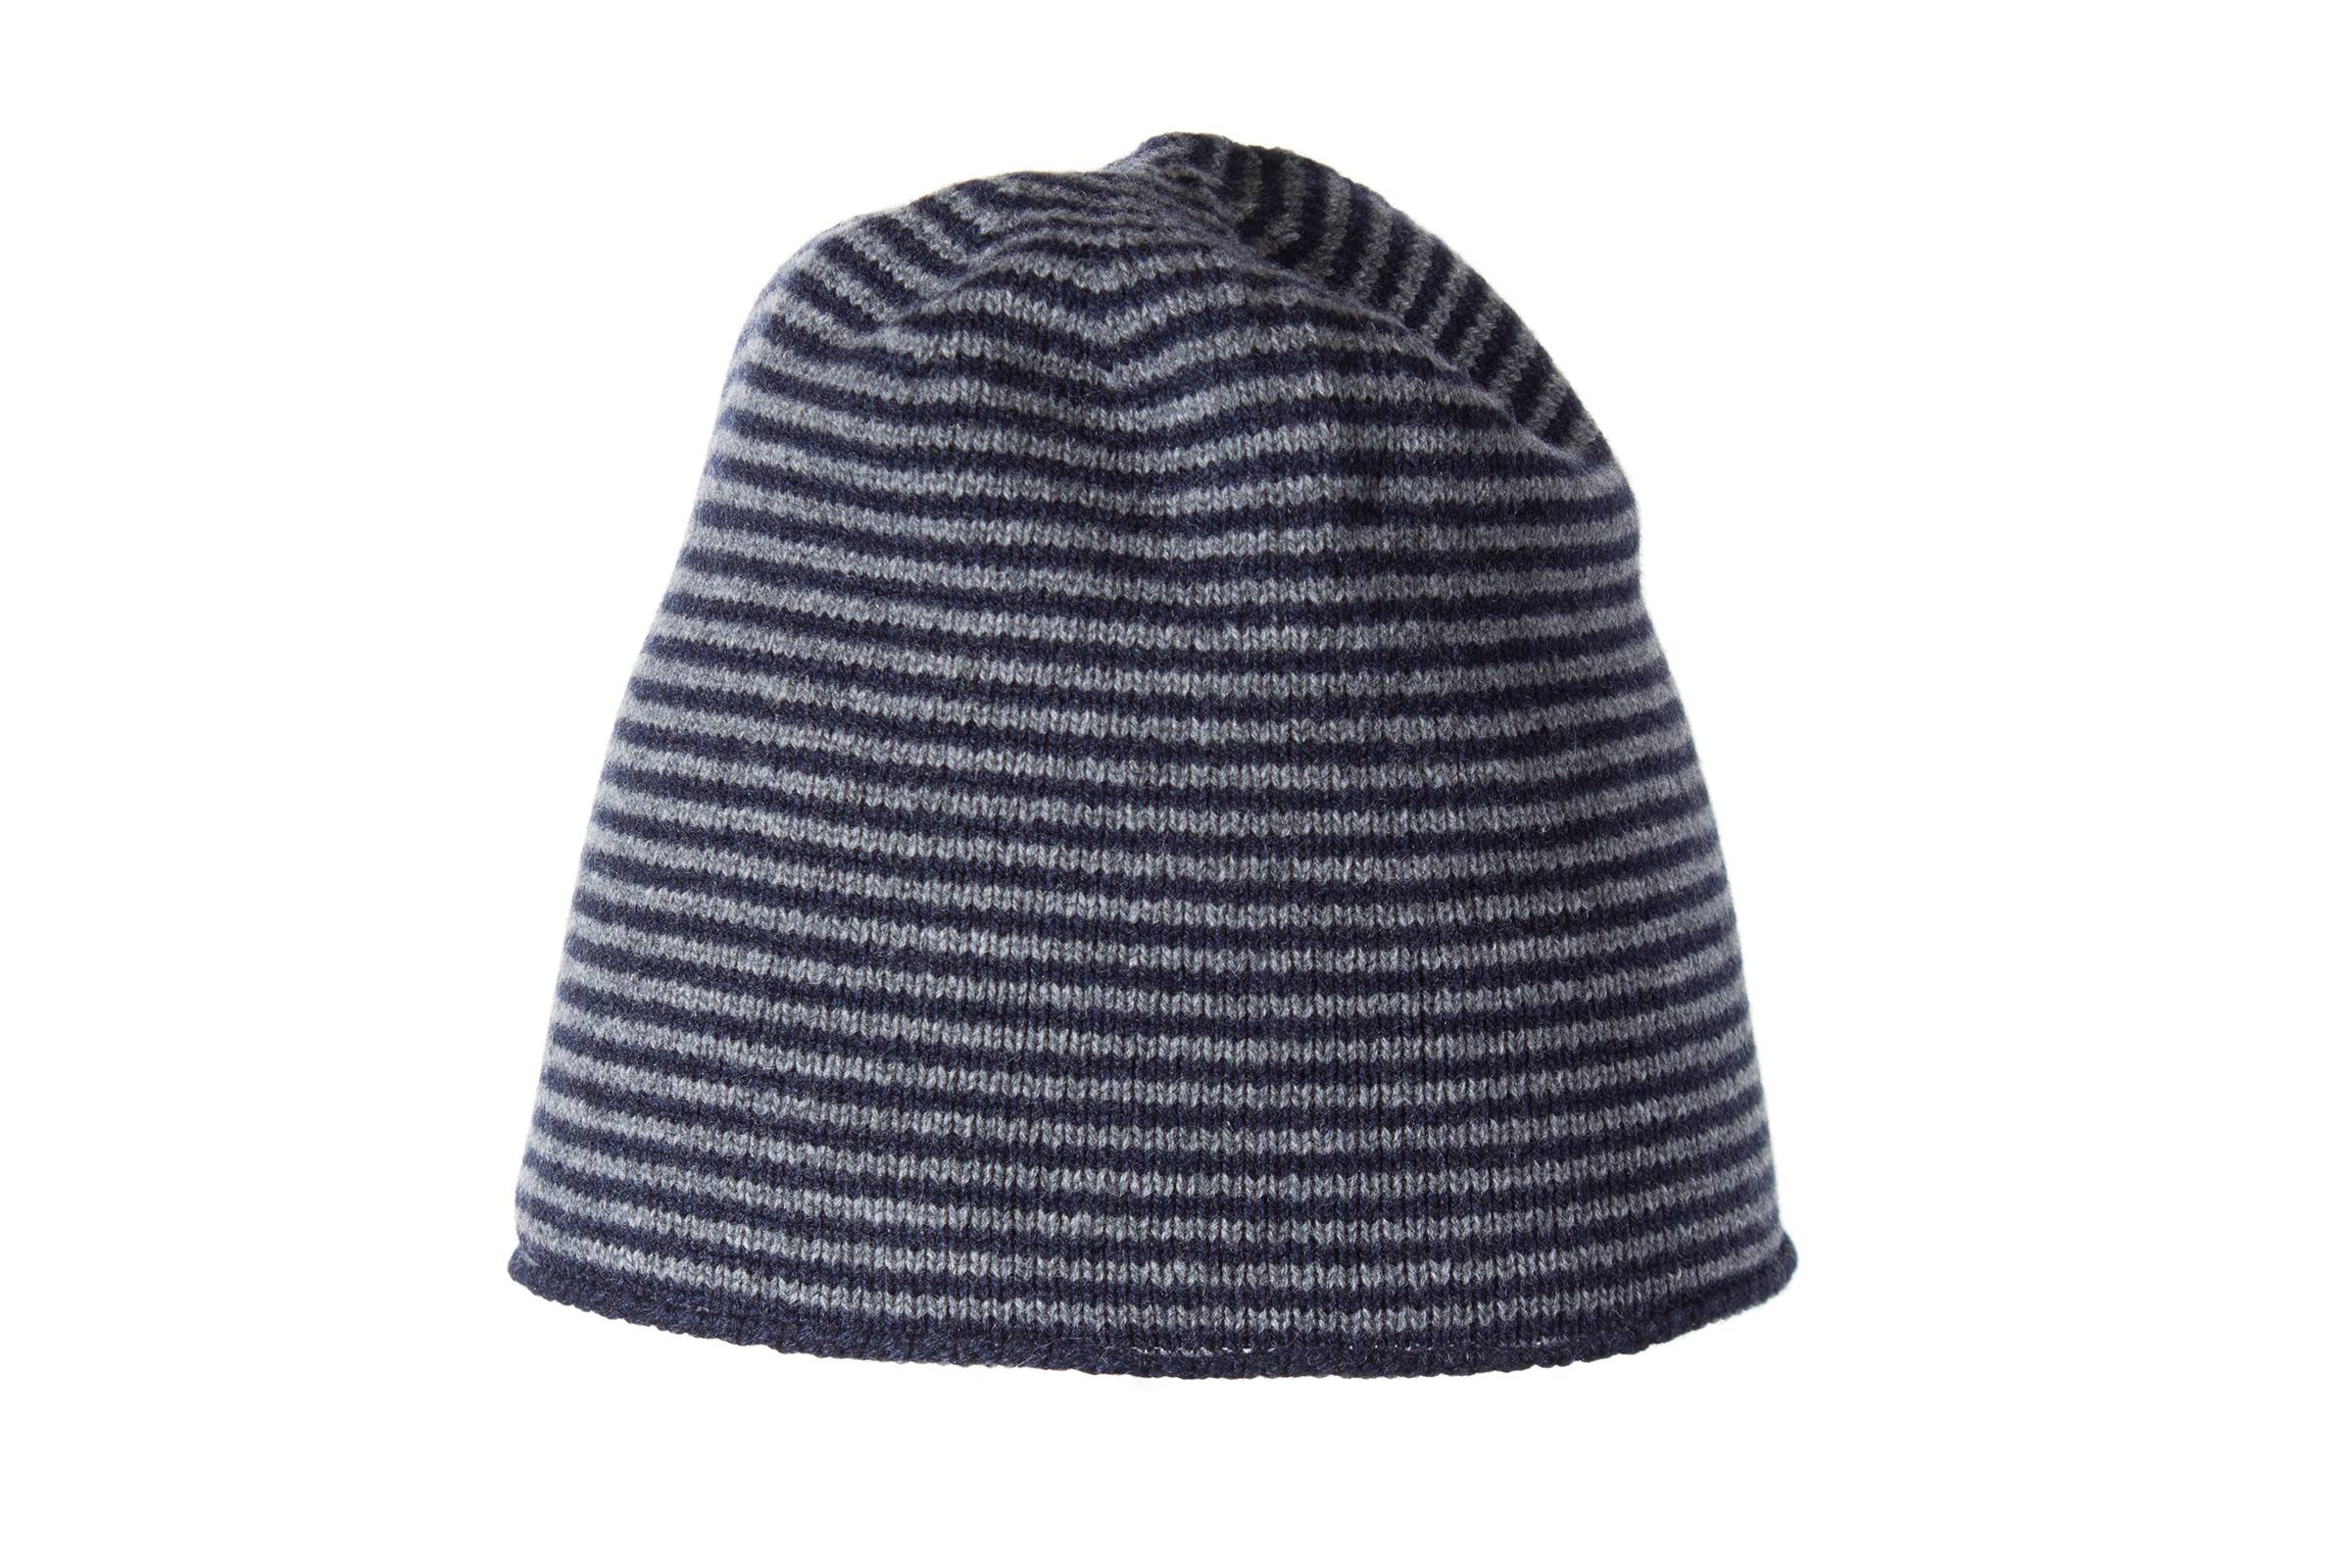 Haube BOBBY cashmere/wool / cashmere/wool